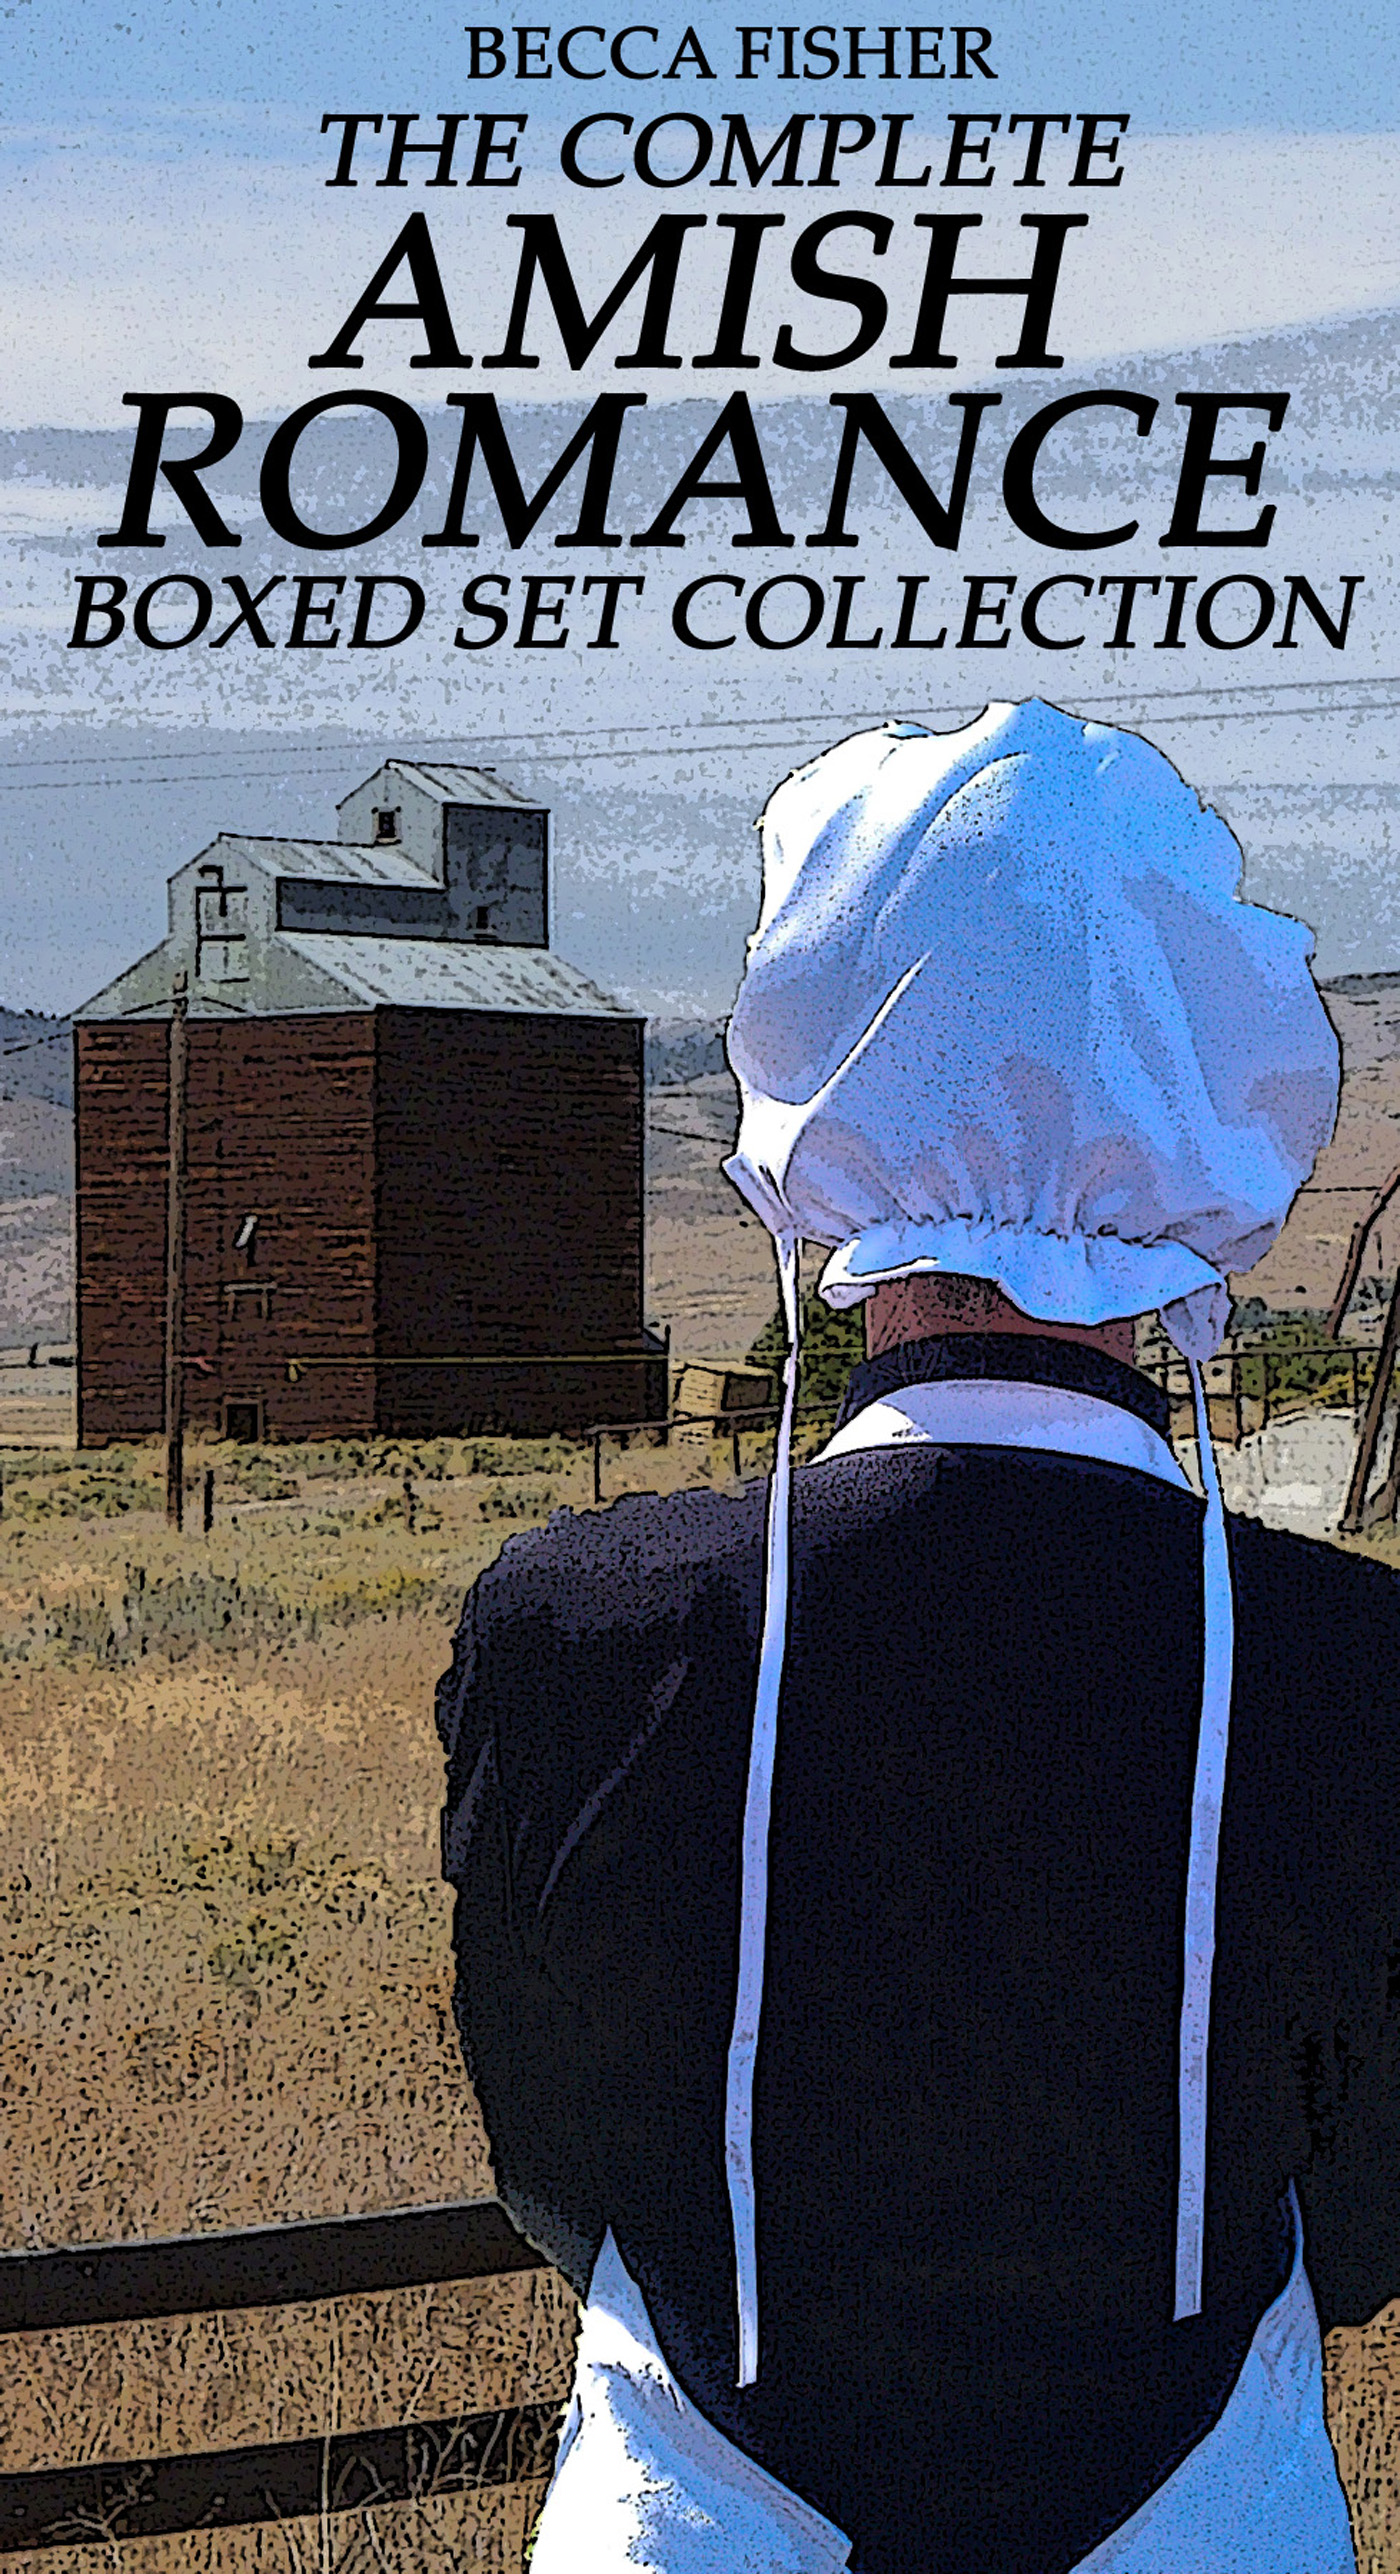 Becca Fisher - The Complete Amish Romance Boxed Set Collection